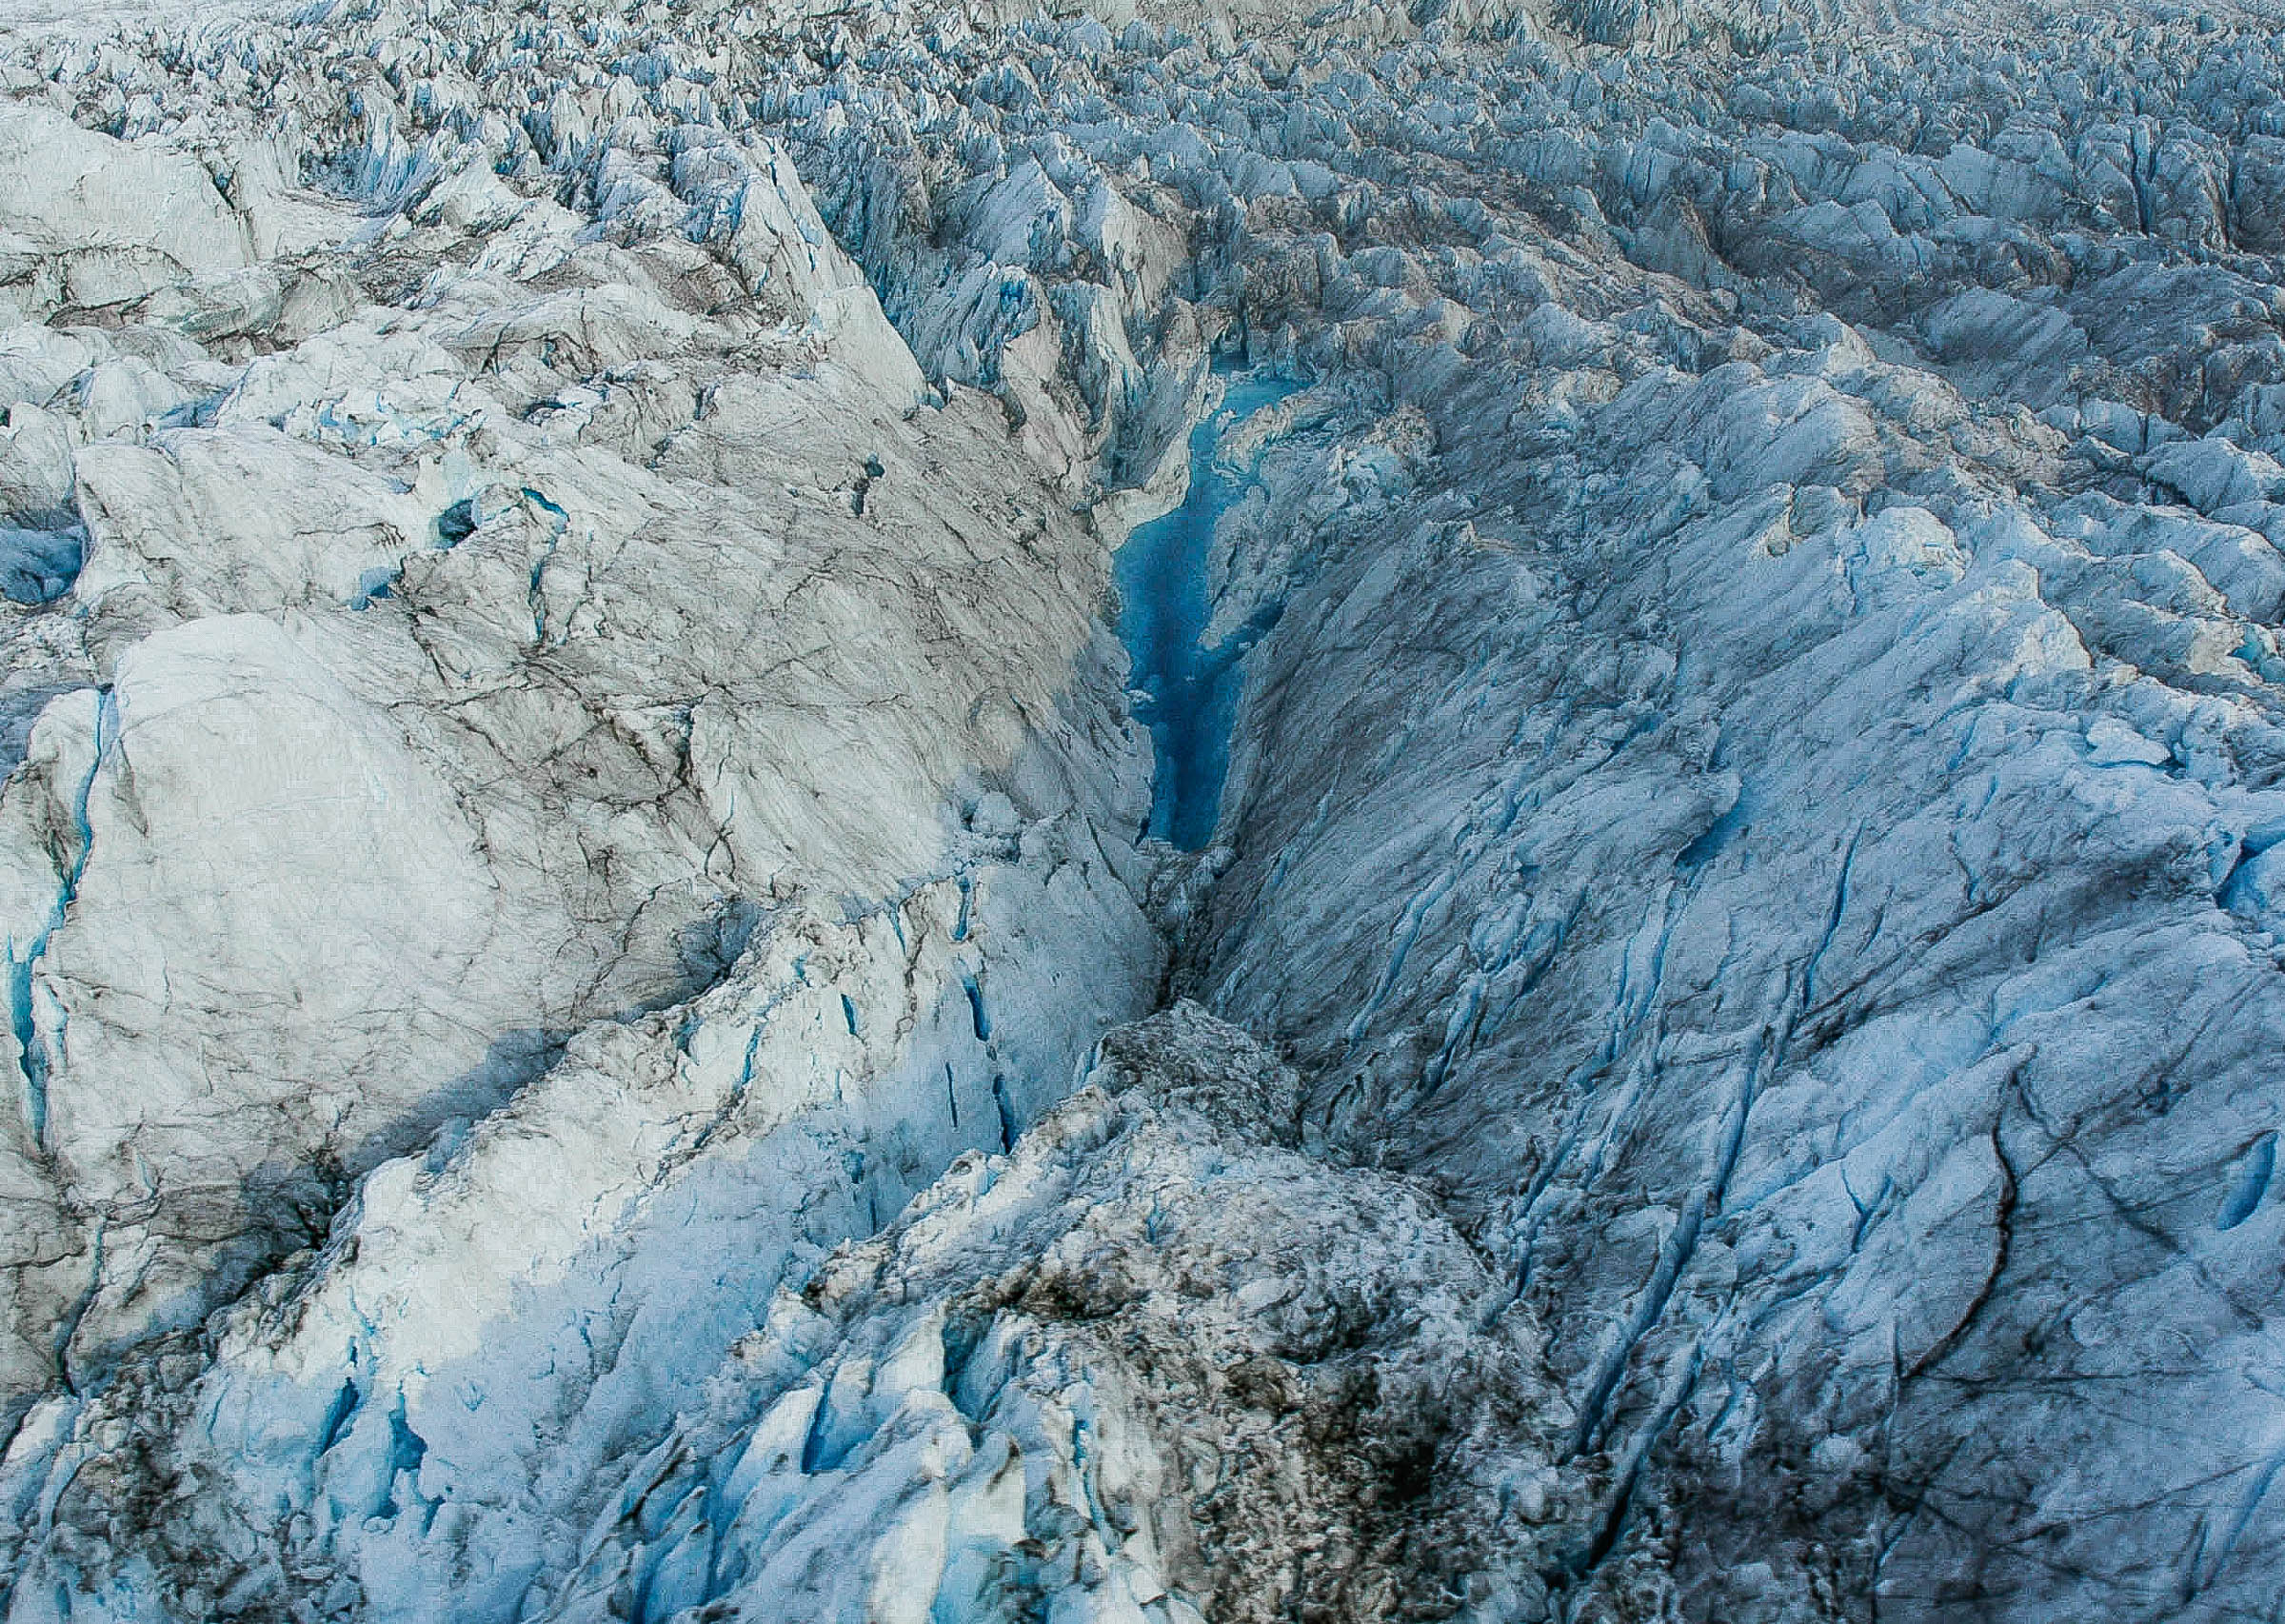 Melted surface ice finds its way as water into a glacier through cracks and crevasses, weakening the ice and  accelerating  glacier retreat. Photographed in Greenland. JONAA©Kristjan Fridriksson